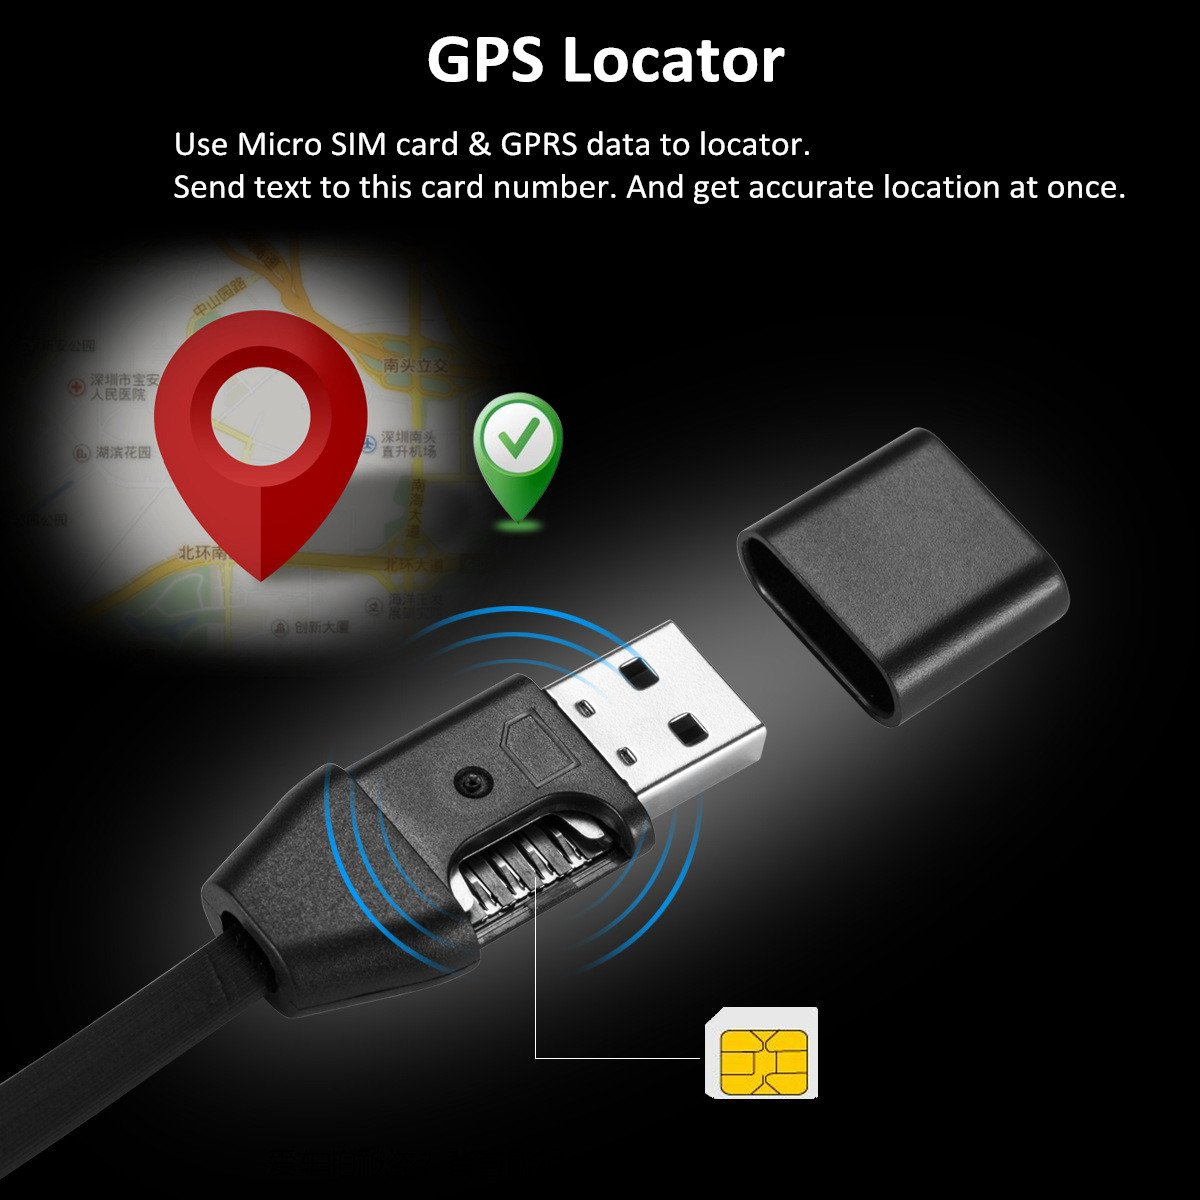 Audio Sound Listening Real Time GSM GPRS Tracking Device Fits for iPhone and Android Support SIM Card 2-in-1 Mini Spy GPS Tracker for Vehicles and USB Charger Cable